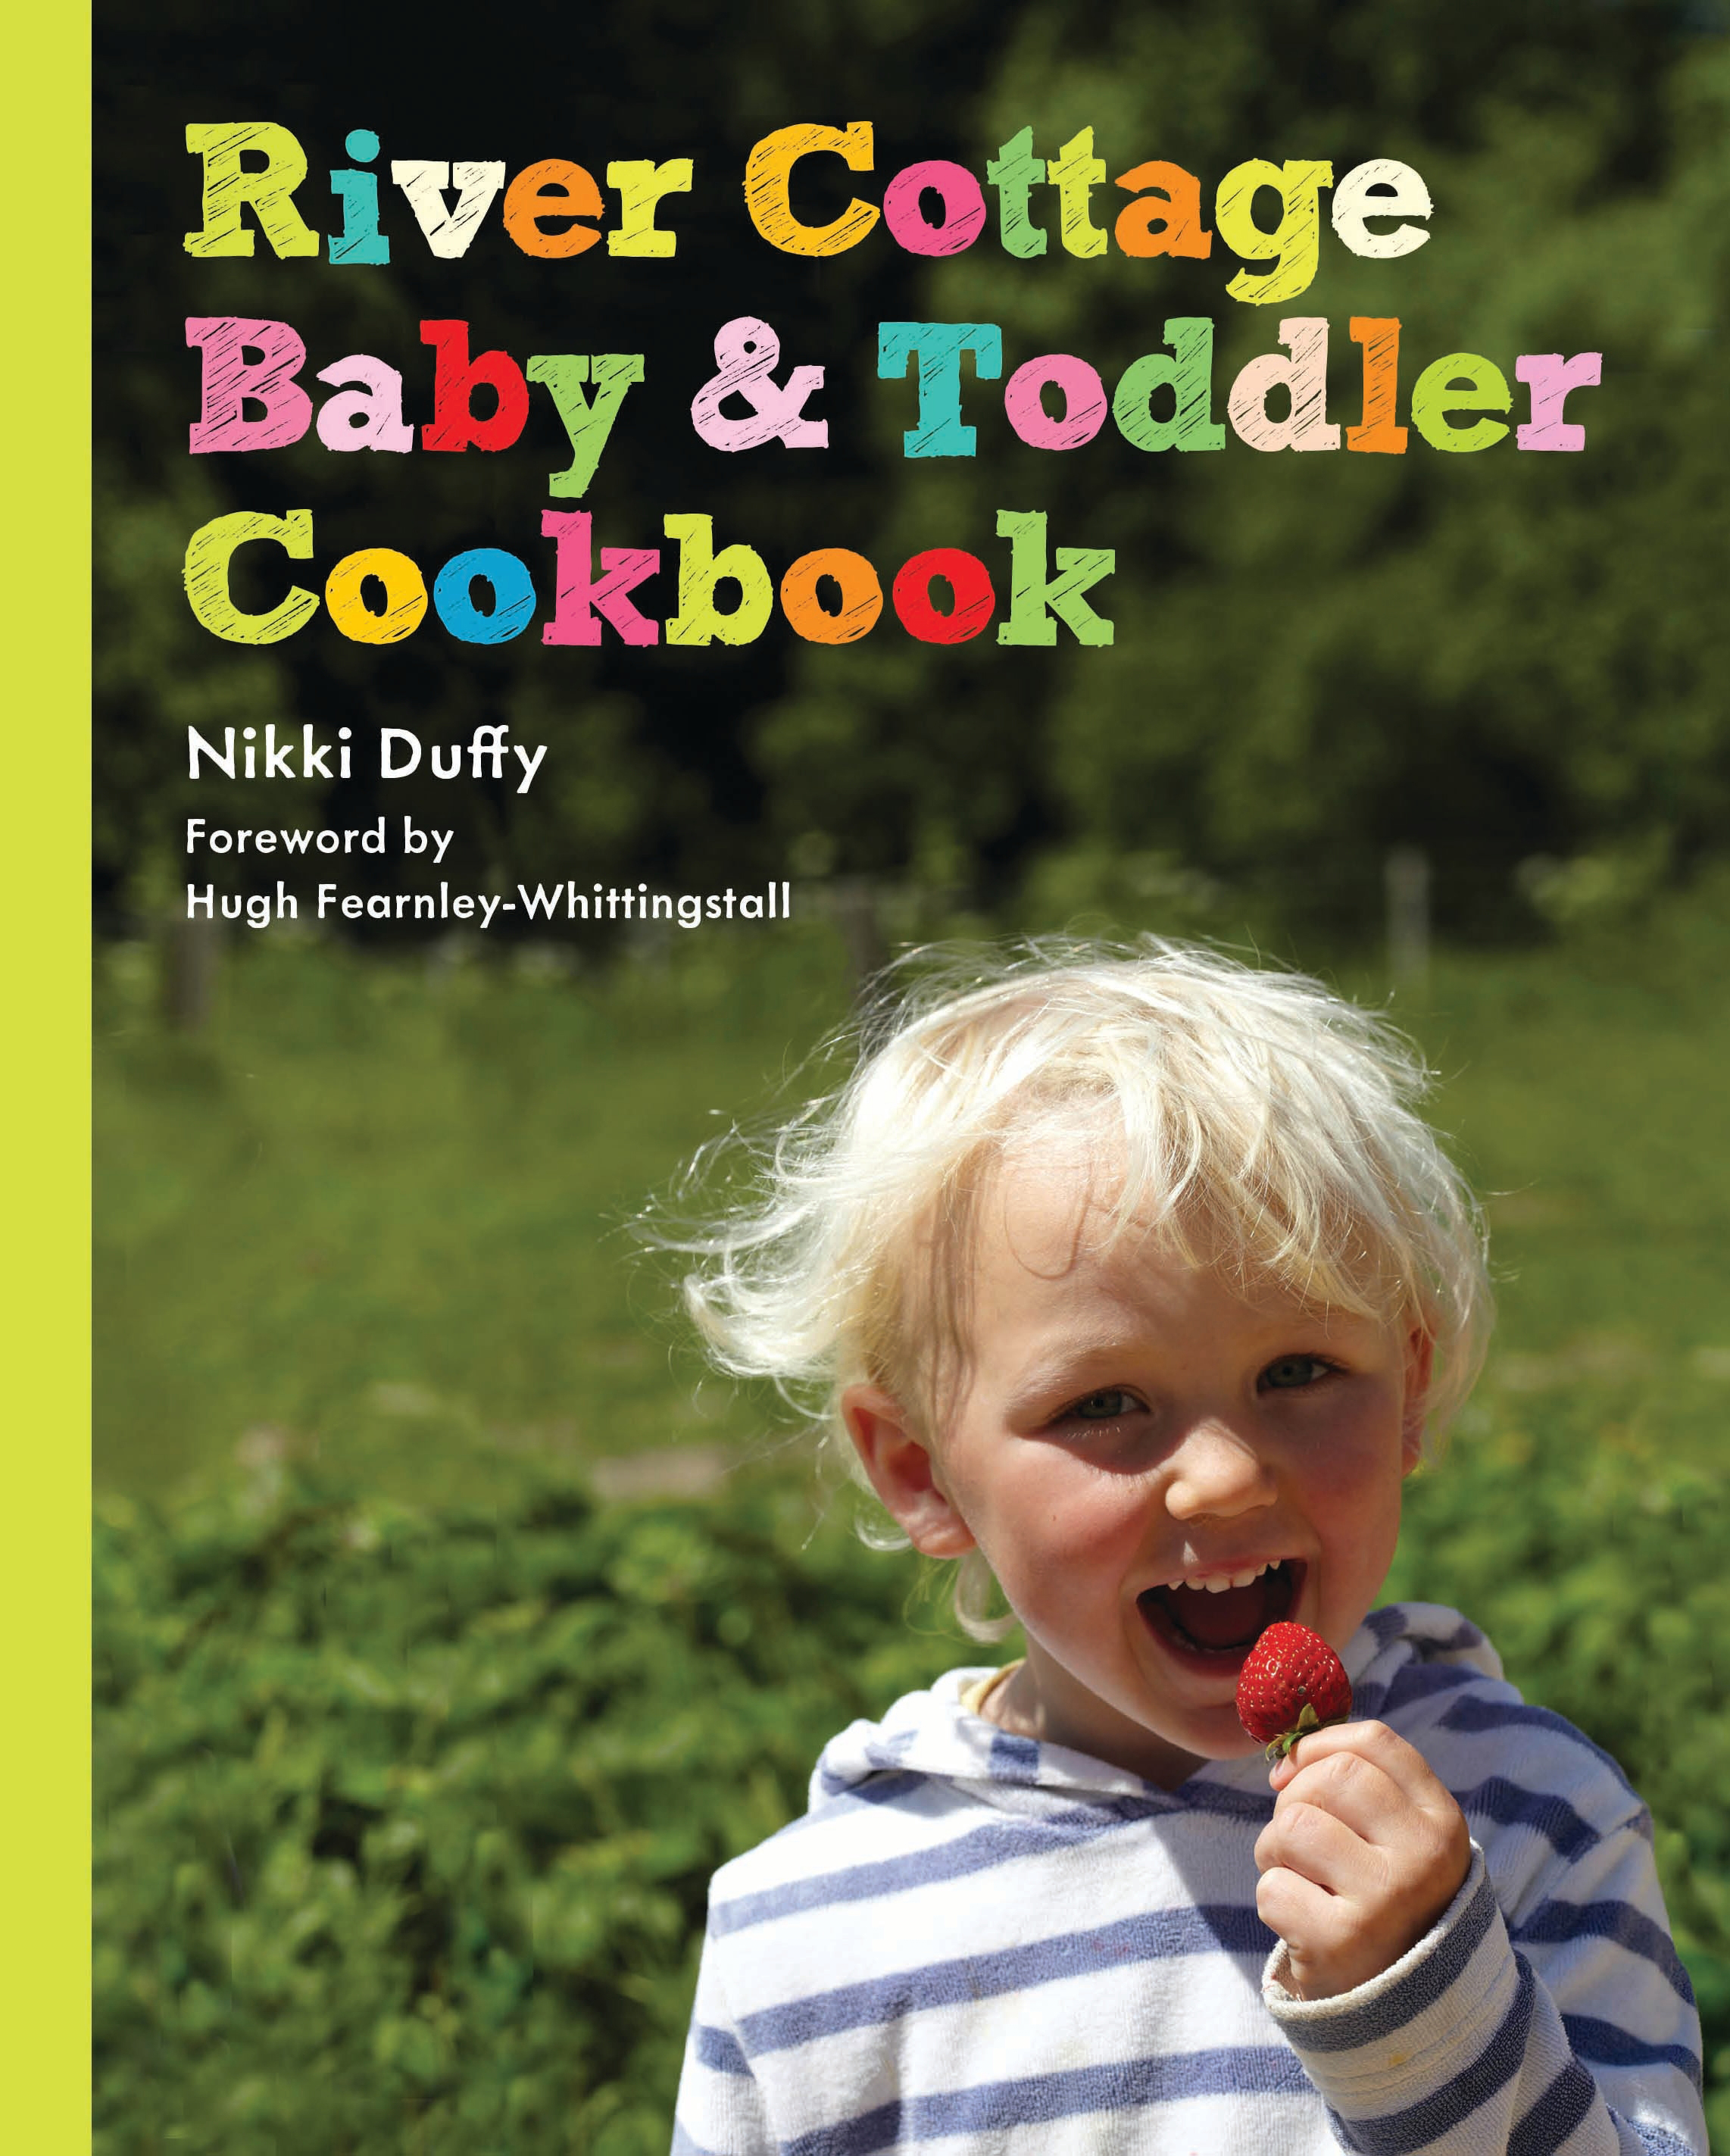 River Cottage Baby and Toddler Cookbook by Nikki Duffy, ISBN: 9781408807569